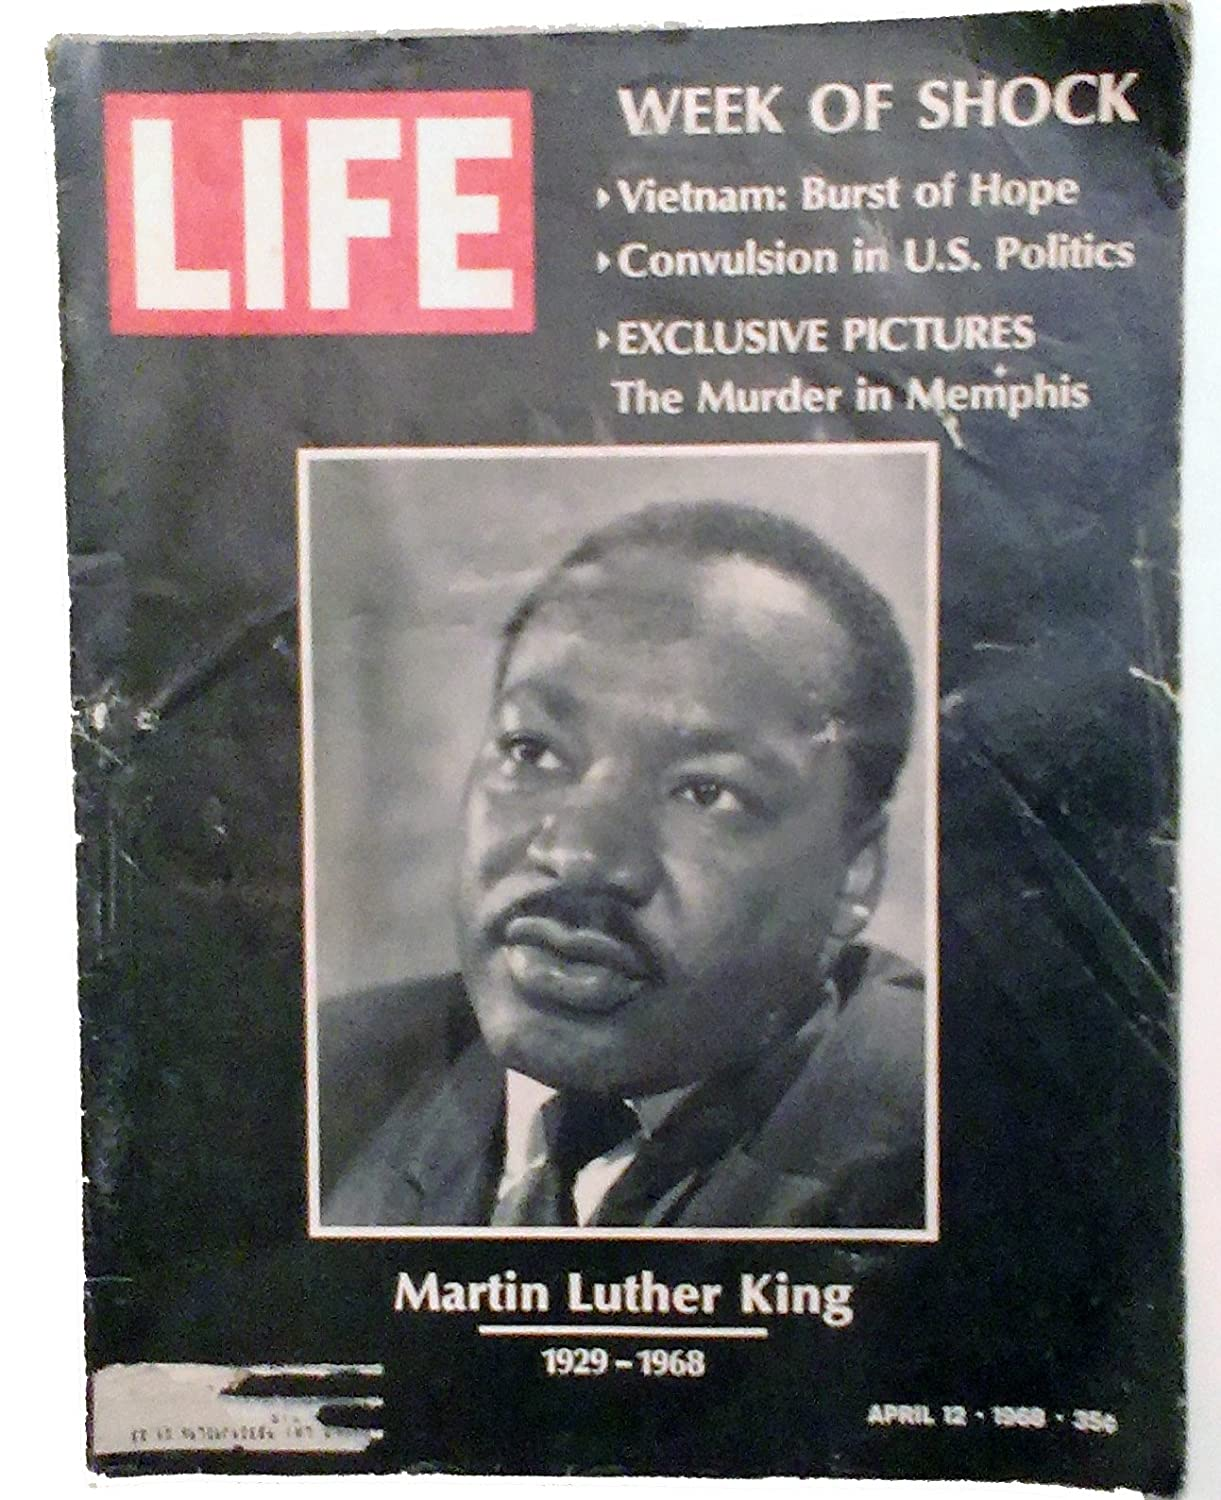 Life Magazine April 12, 1968 -- Cover: Martin Luther King 1929-1968